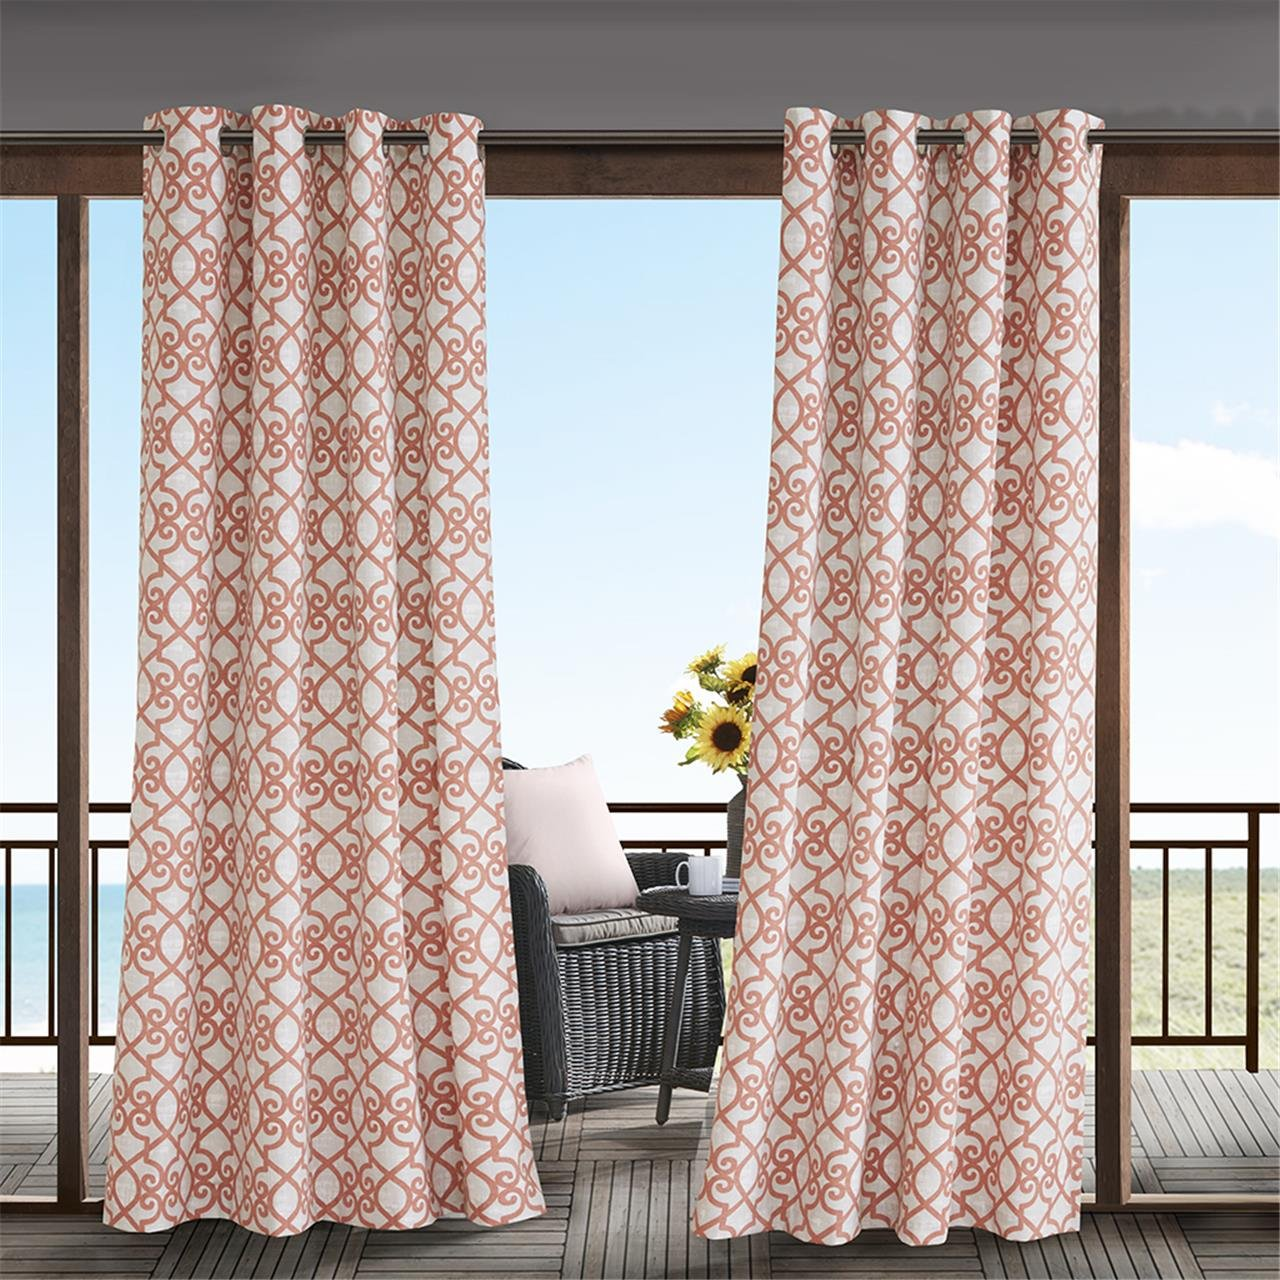 Light Panel Curtains For Door, Modern Contemporary Fabric Coral Window Treatments Curtains For Outdoor, Daven Print Window Curtains, 54X95'', 1-Panel Pack